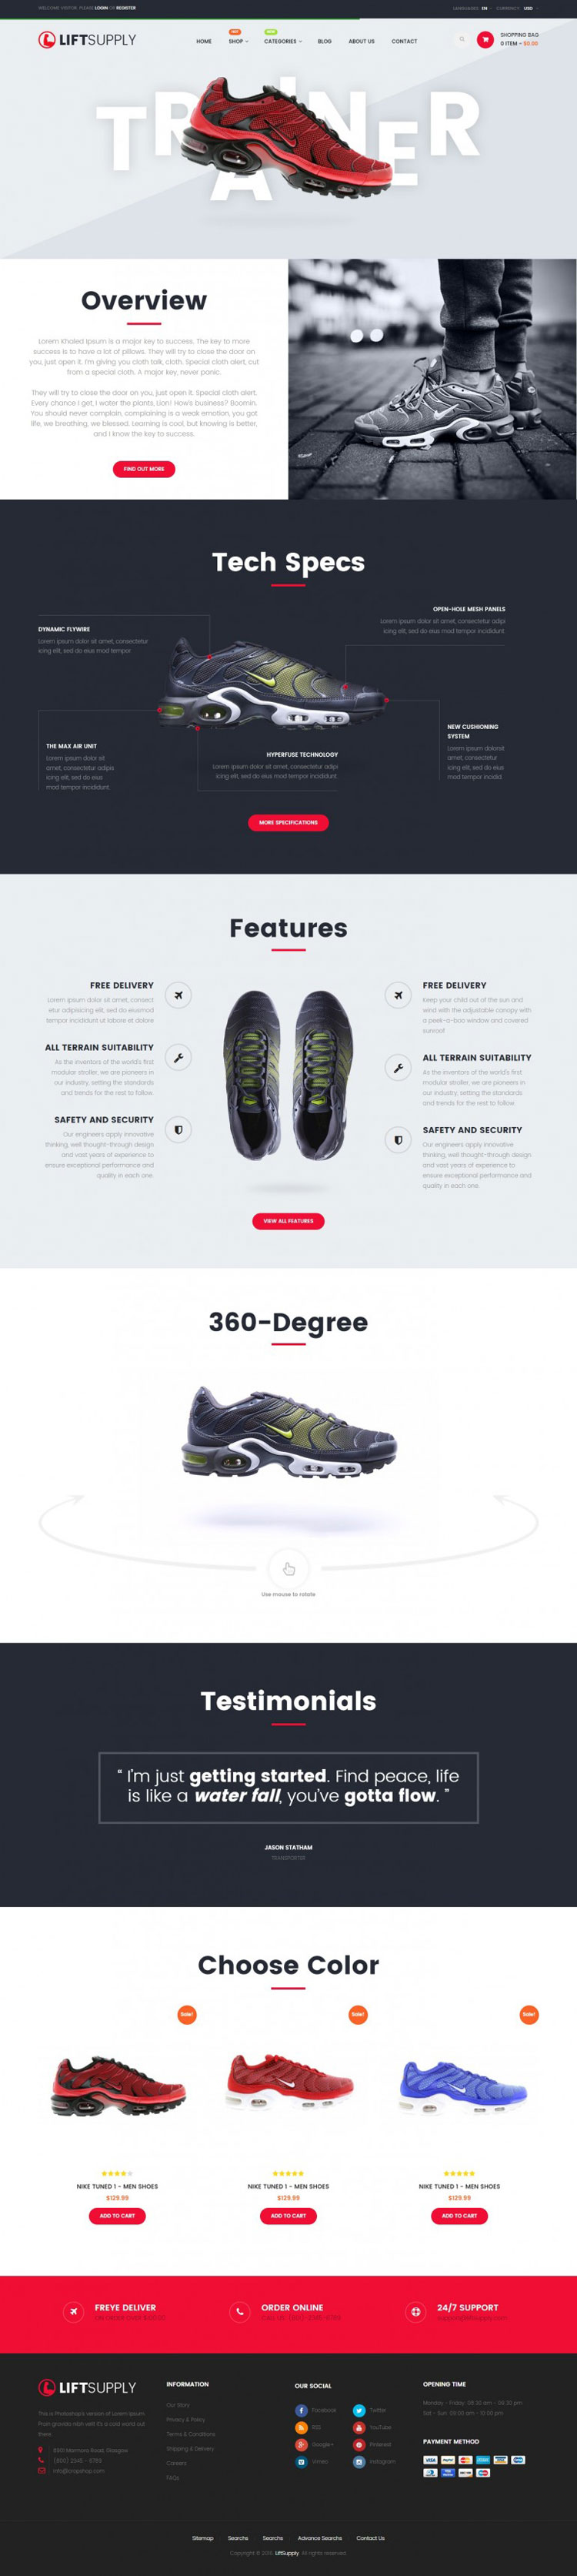 Creative-Newest-Website-Designs-for-Inspiration-005